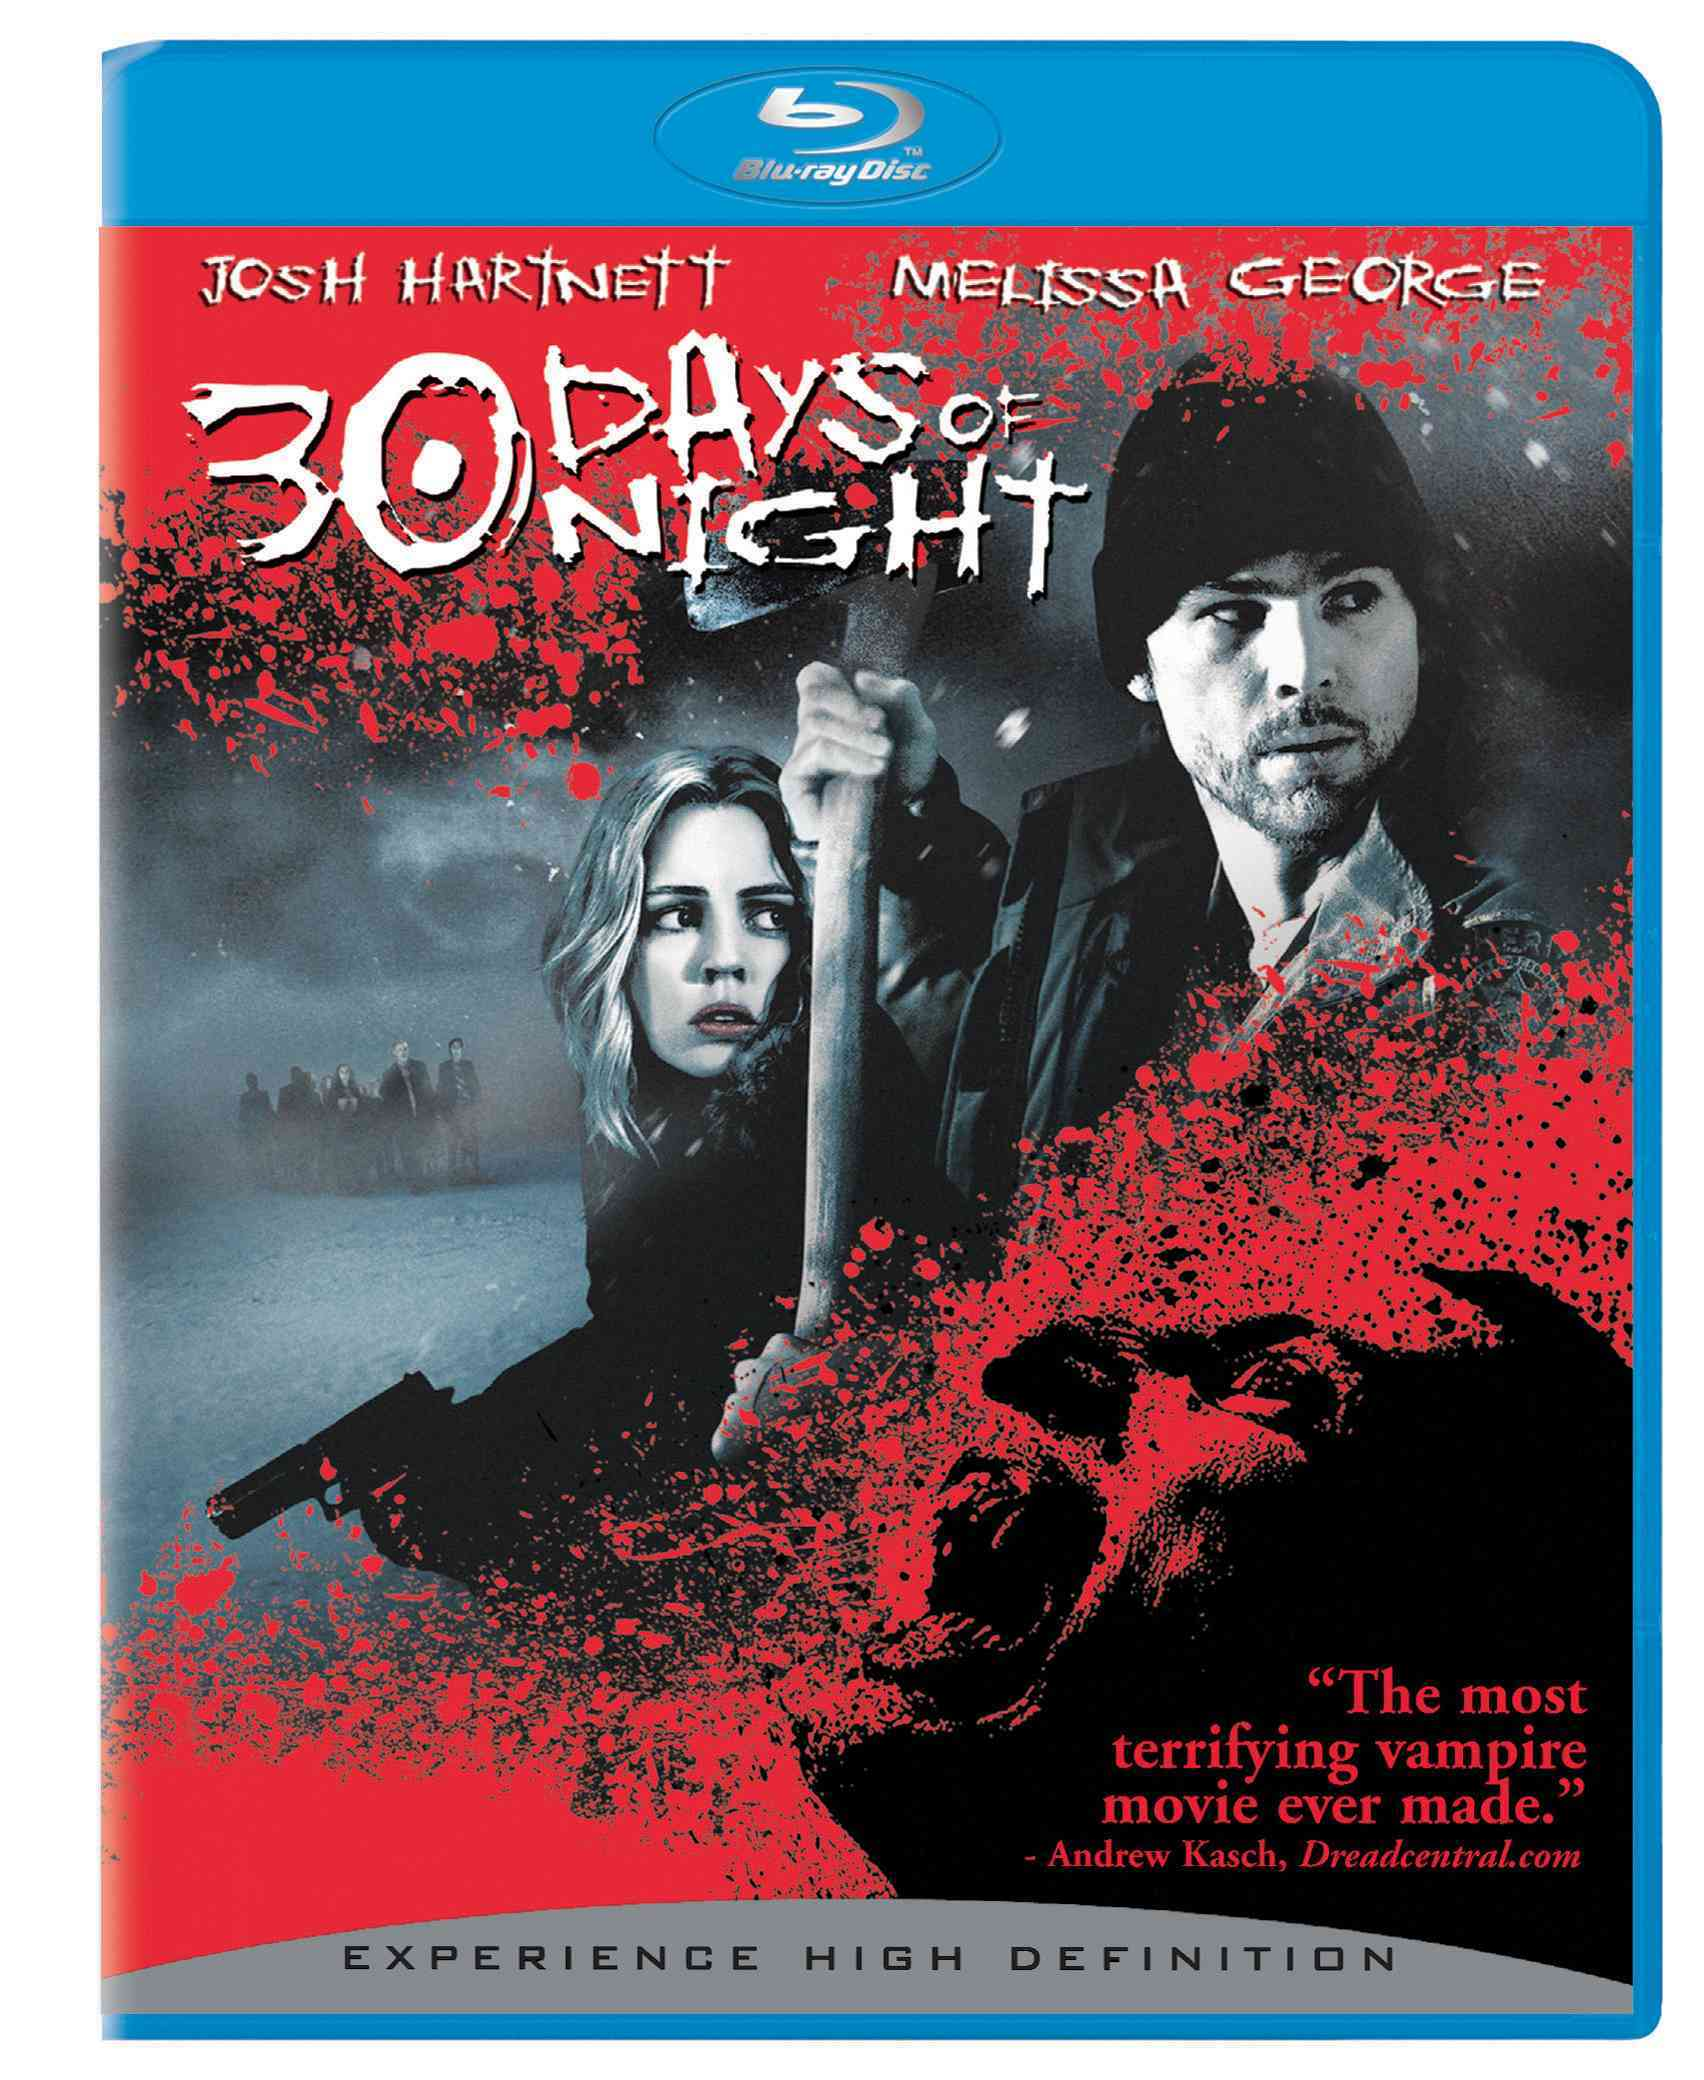 30 DAYS OF NIGHT BY HARTNETT,JOSH (Blu-Ray)